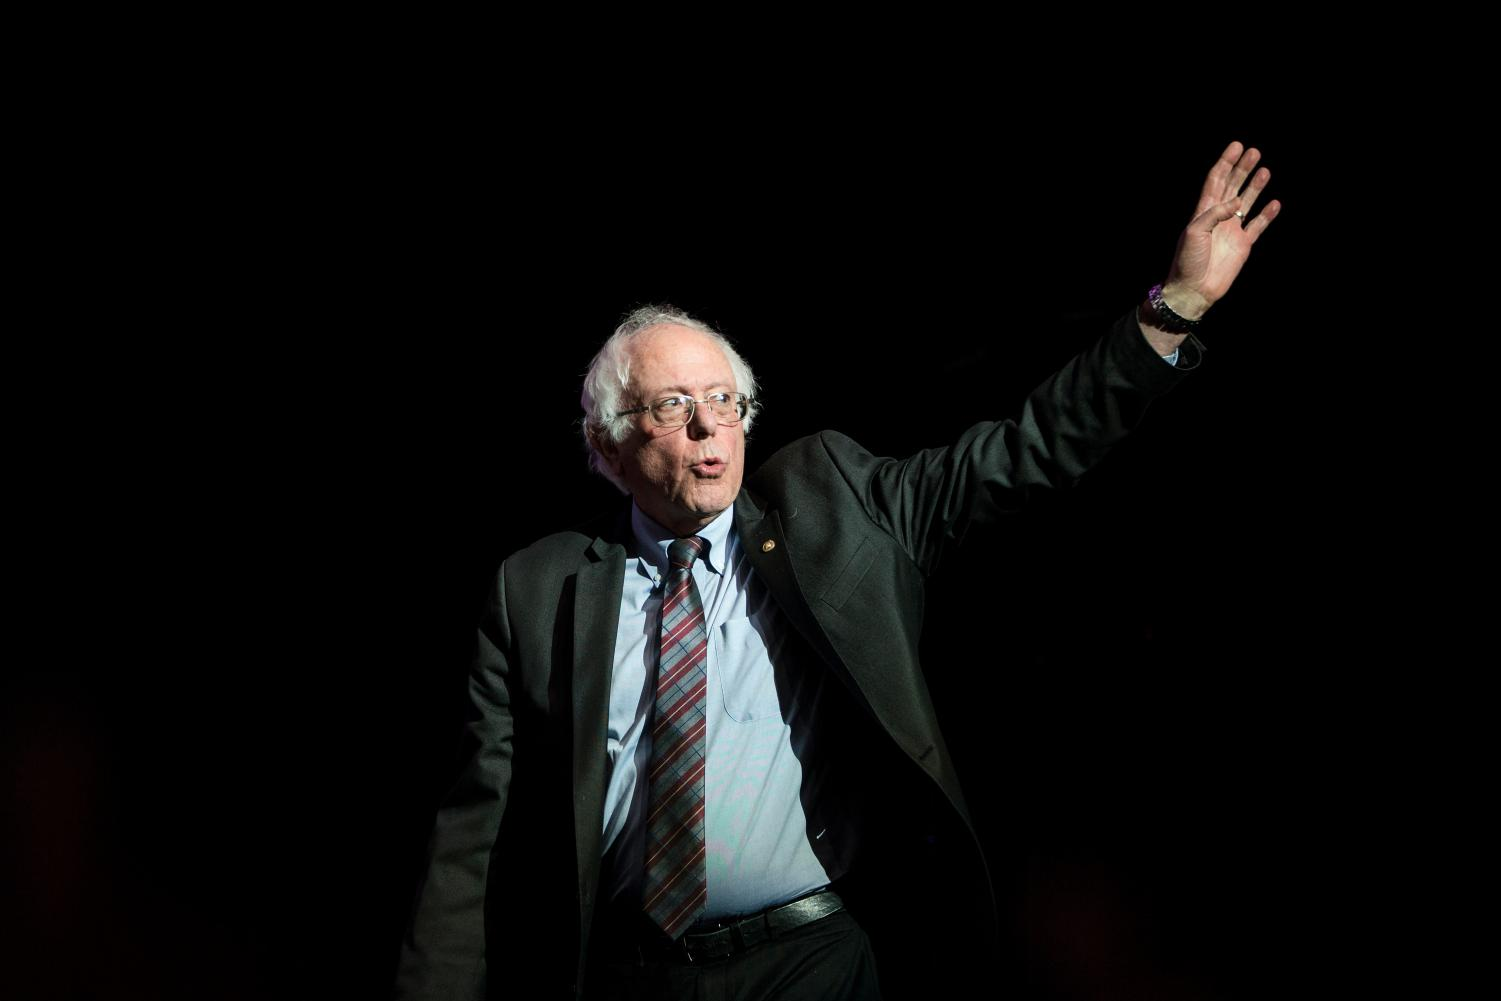 Sen. Bernie Sanders waves as he takes the stage at the Our Revolution Massachusetts Rally in Boston, Mass., on March 31, 2017. Photo: Scott Eisen/Getty Images